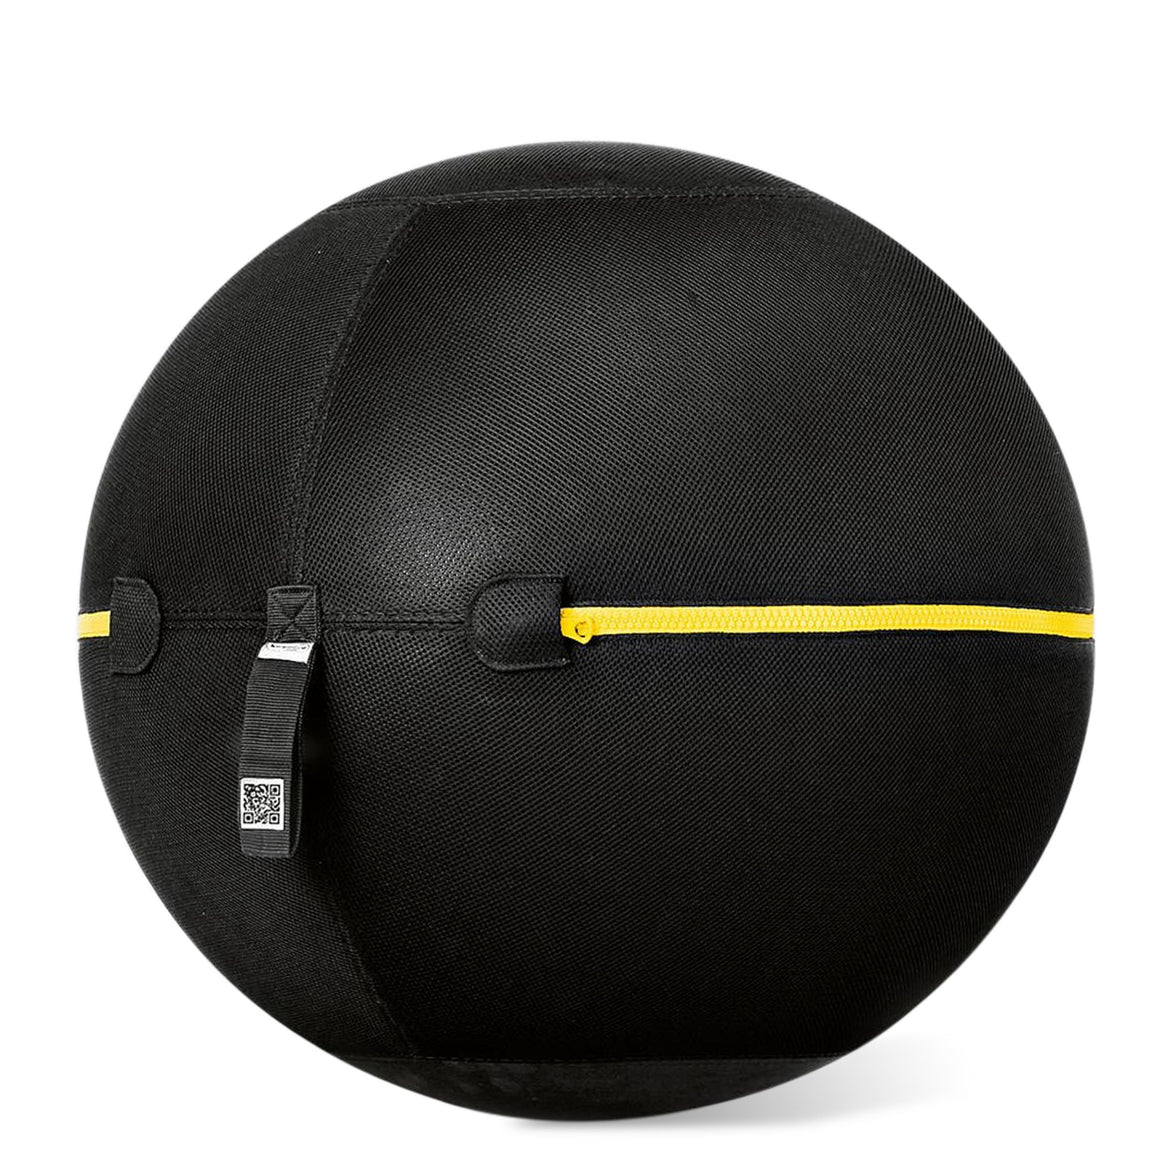 Active Sitting Ball